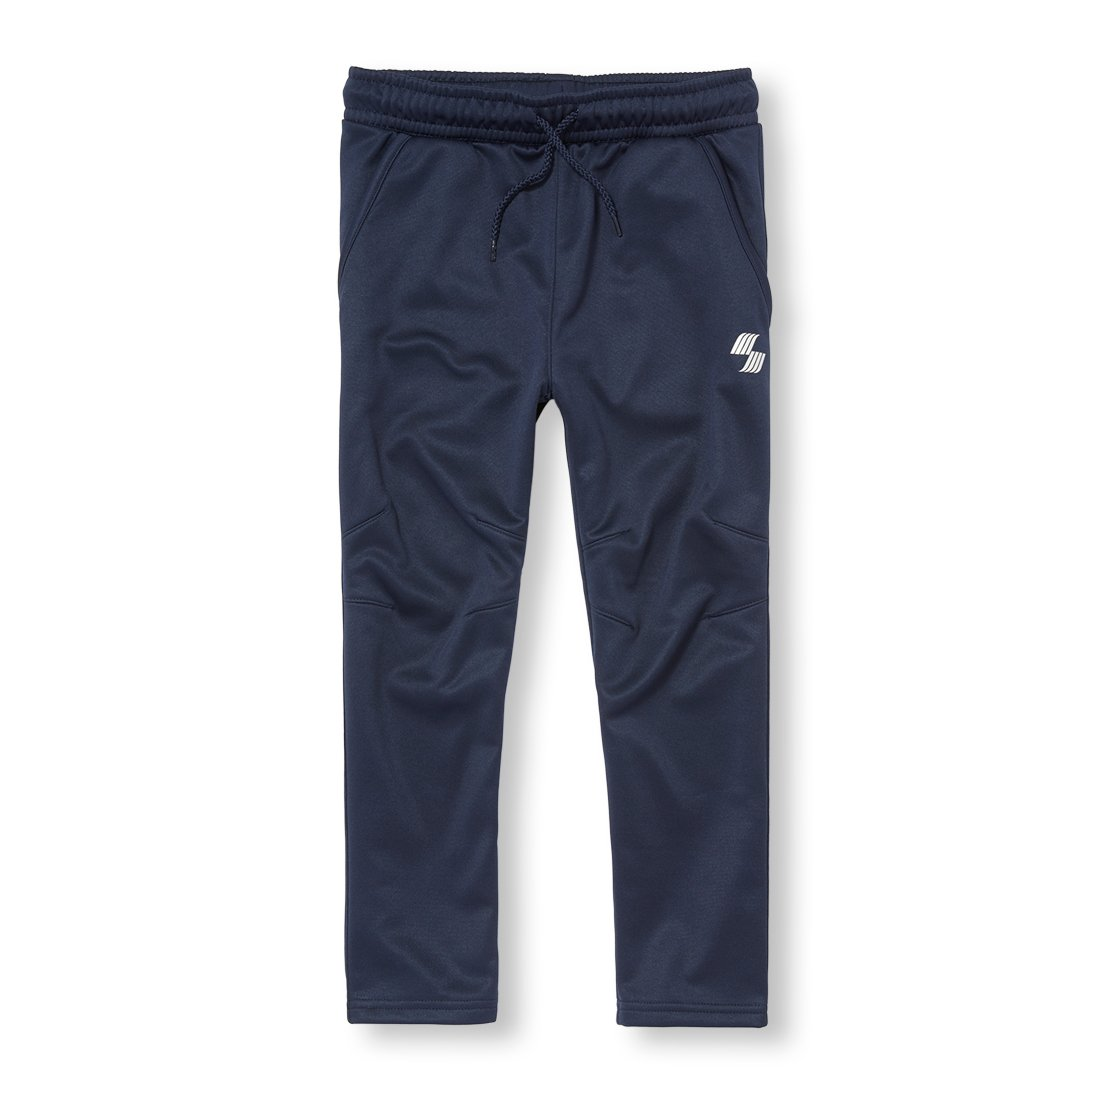 The Children's Place Boys' Big Athletic Pant The Children' s Place 2102770